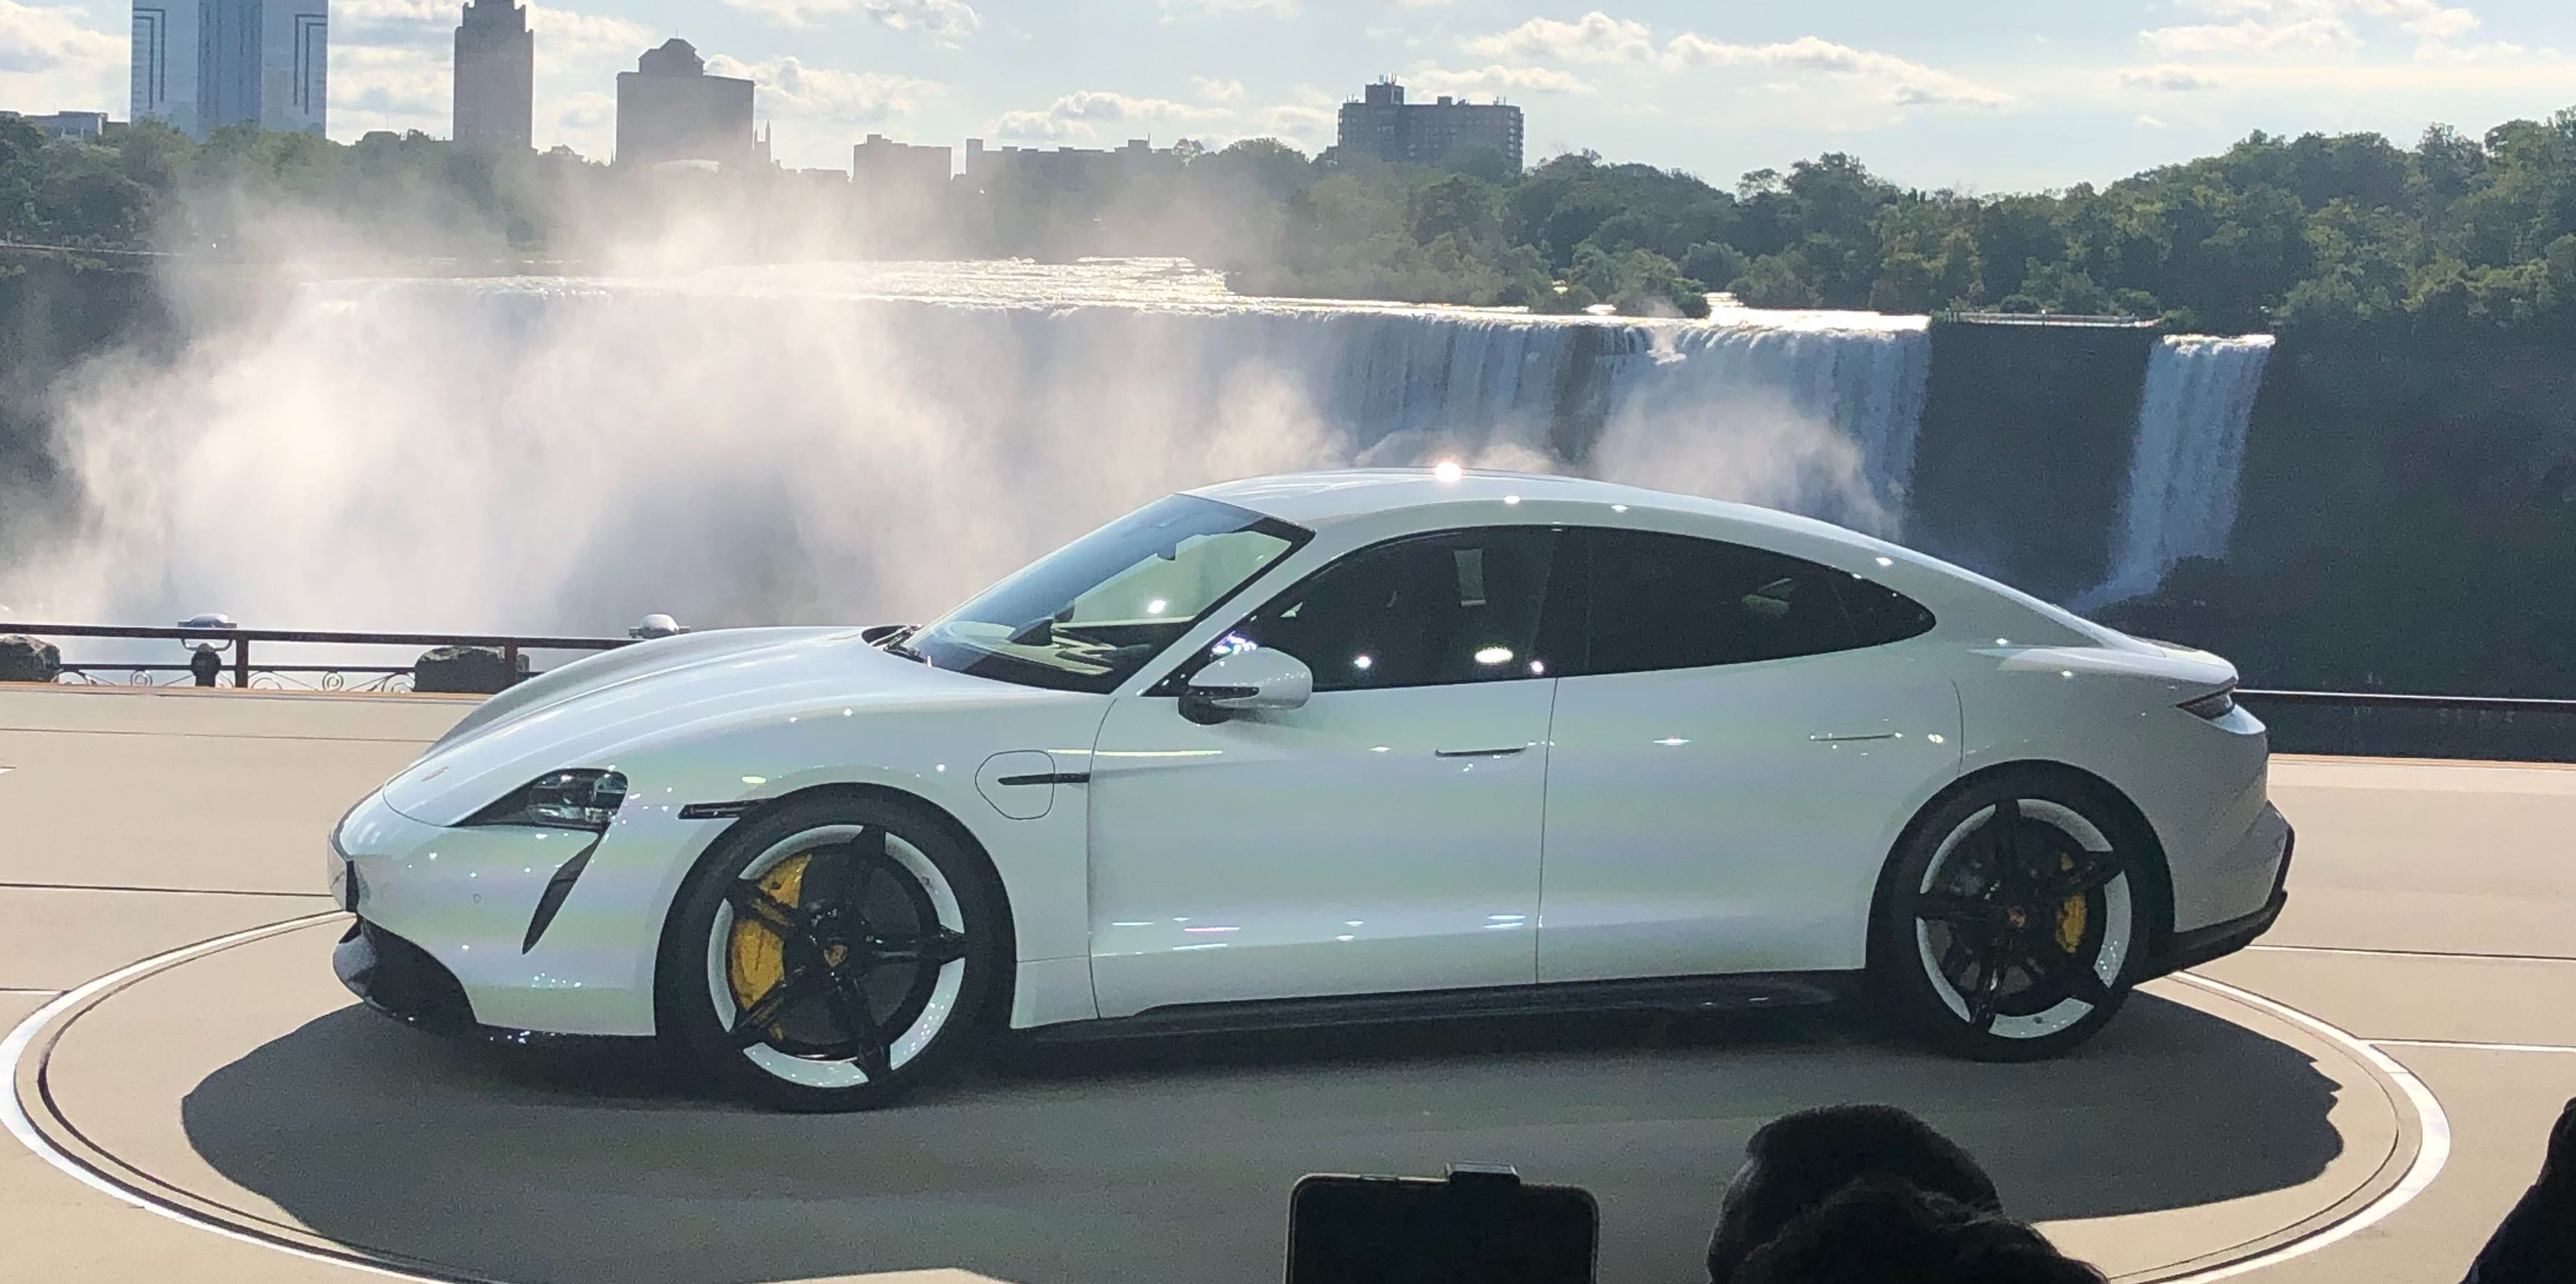 Porsche Taycan demonstrates difficulty launching performance